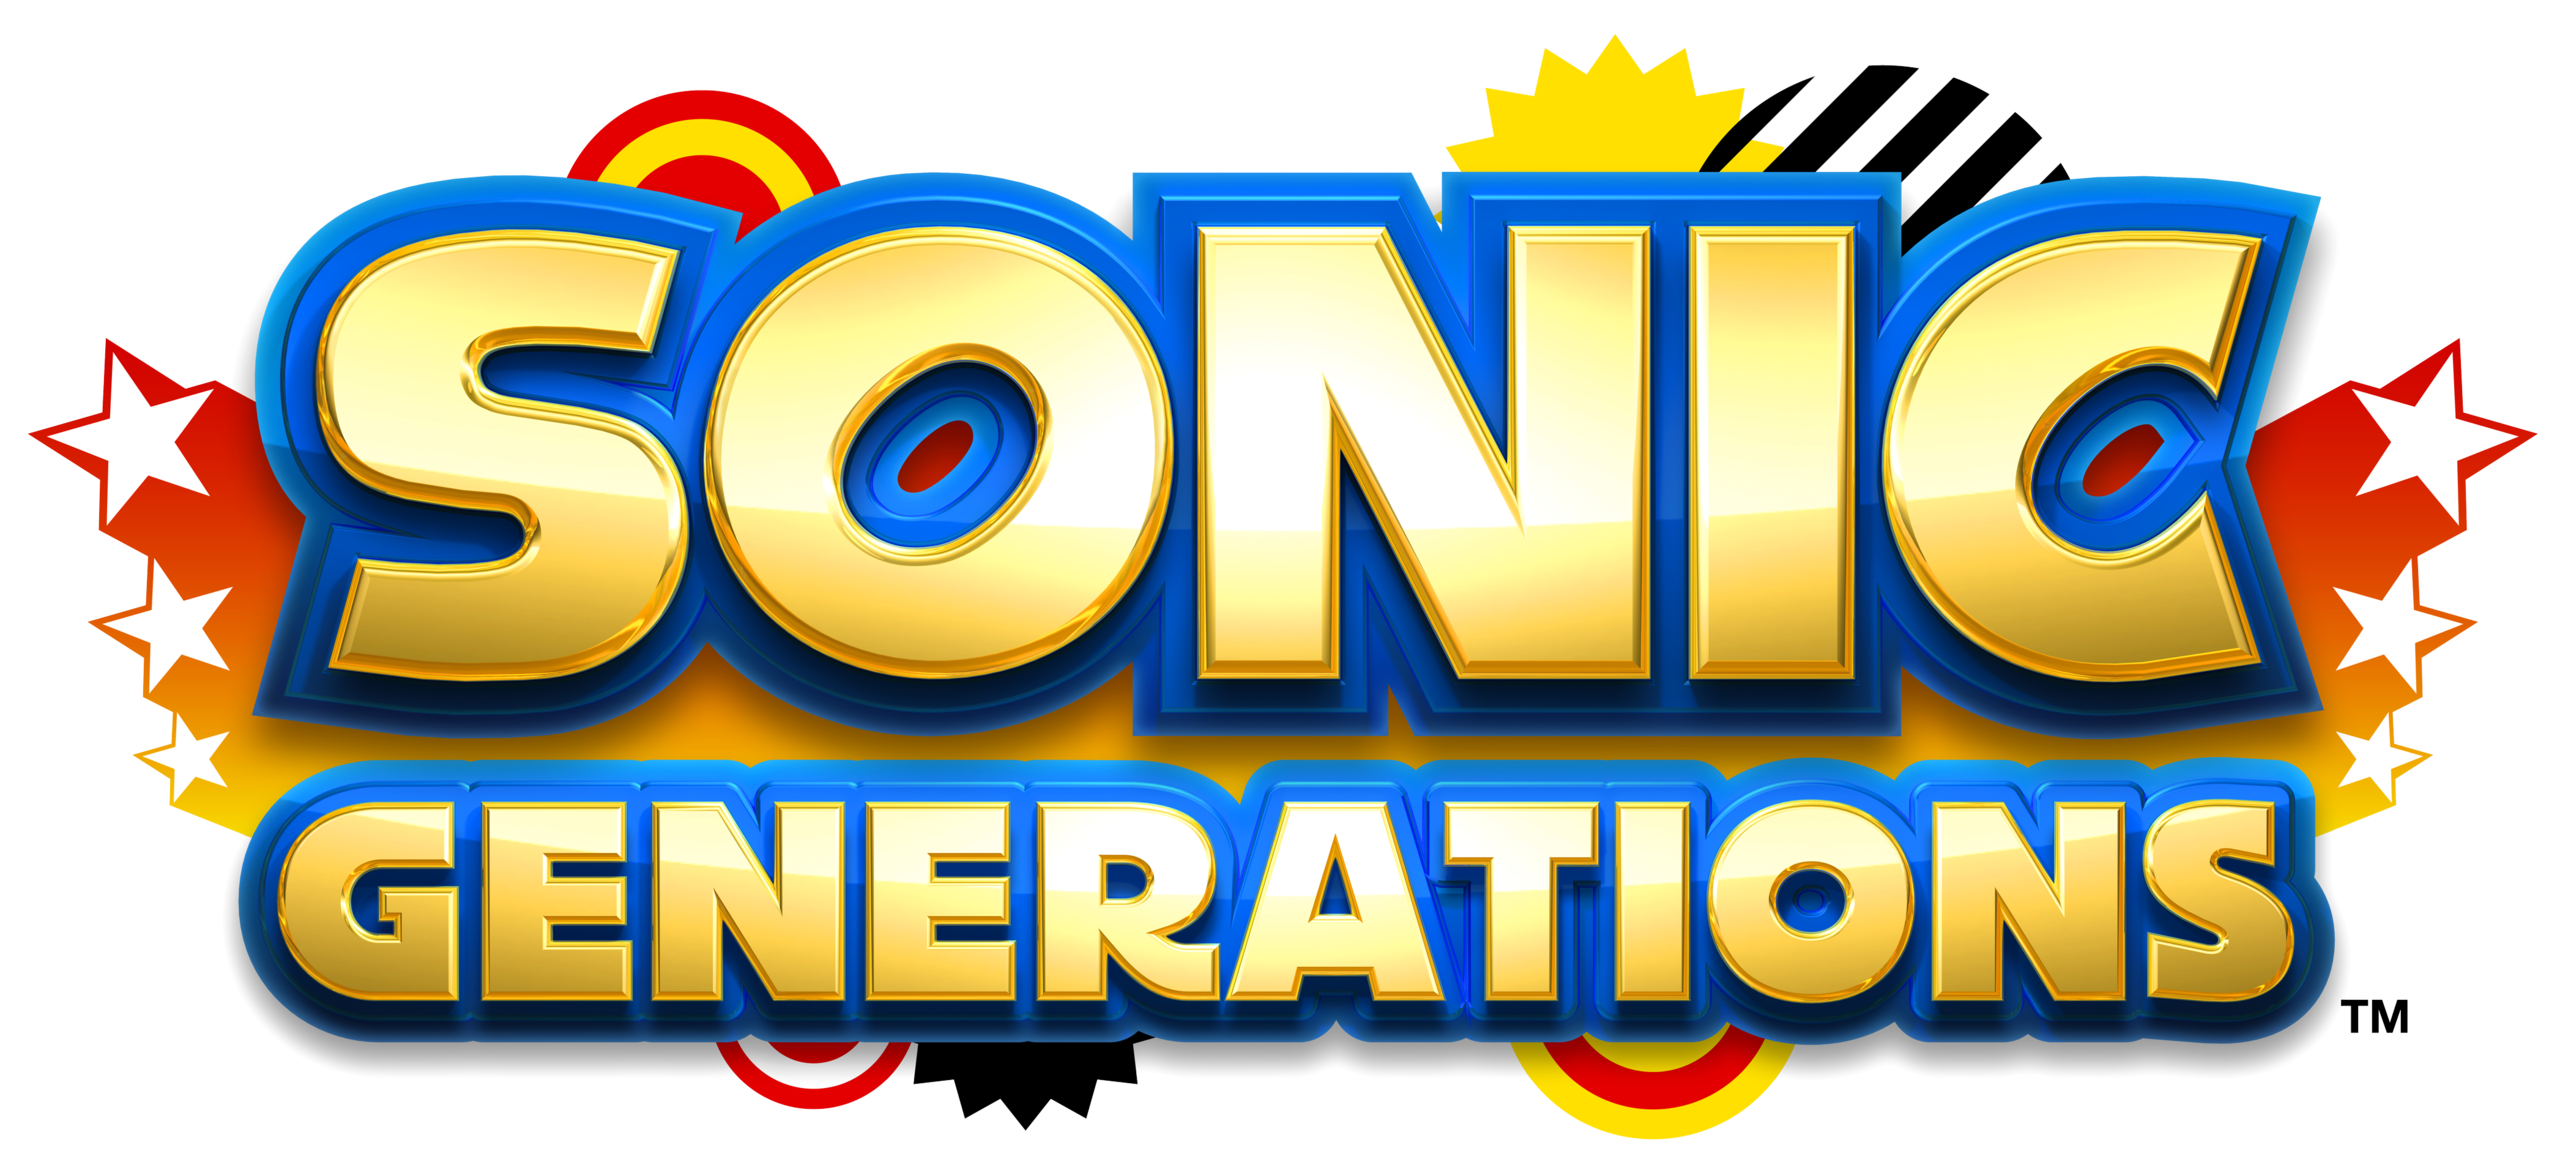 sonic and friends images Sonic Generations logo HD ...